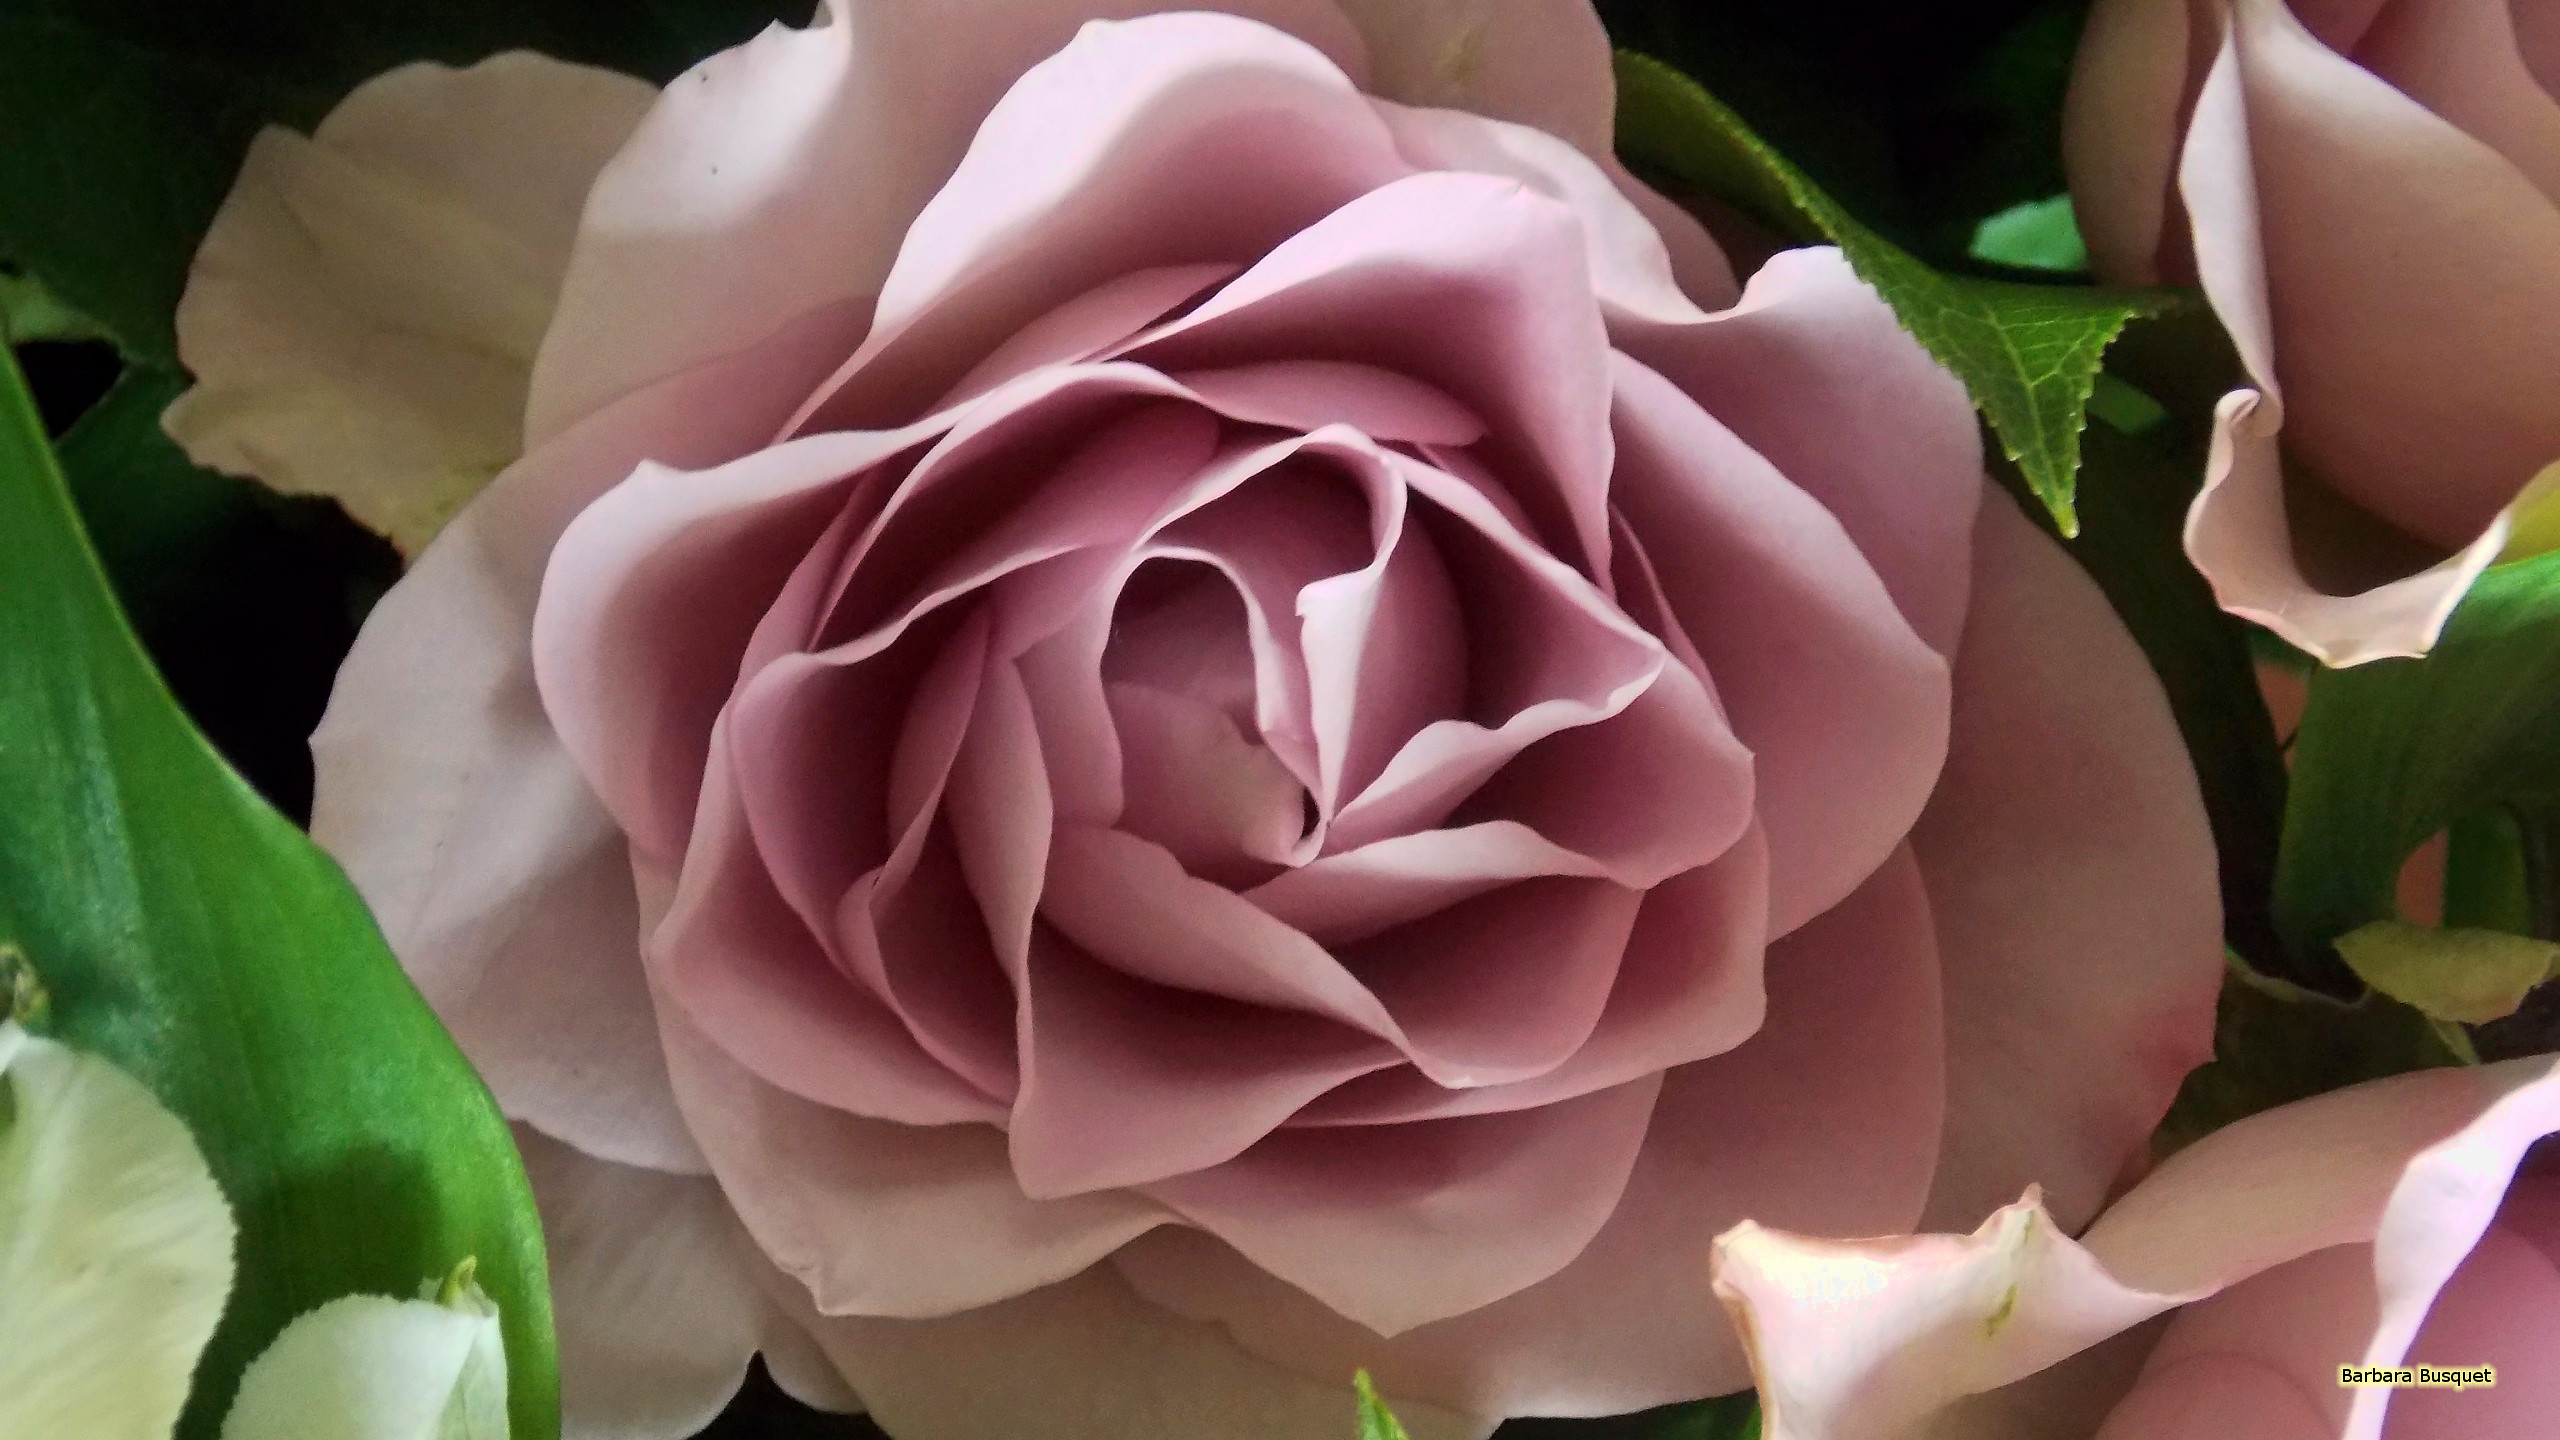 Pink Rose Wallpaper With A Beautiful Close Up Photo